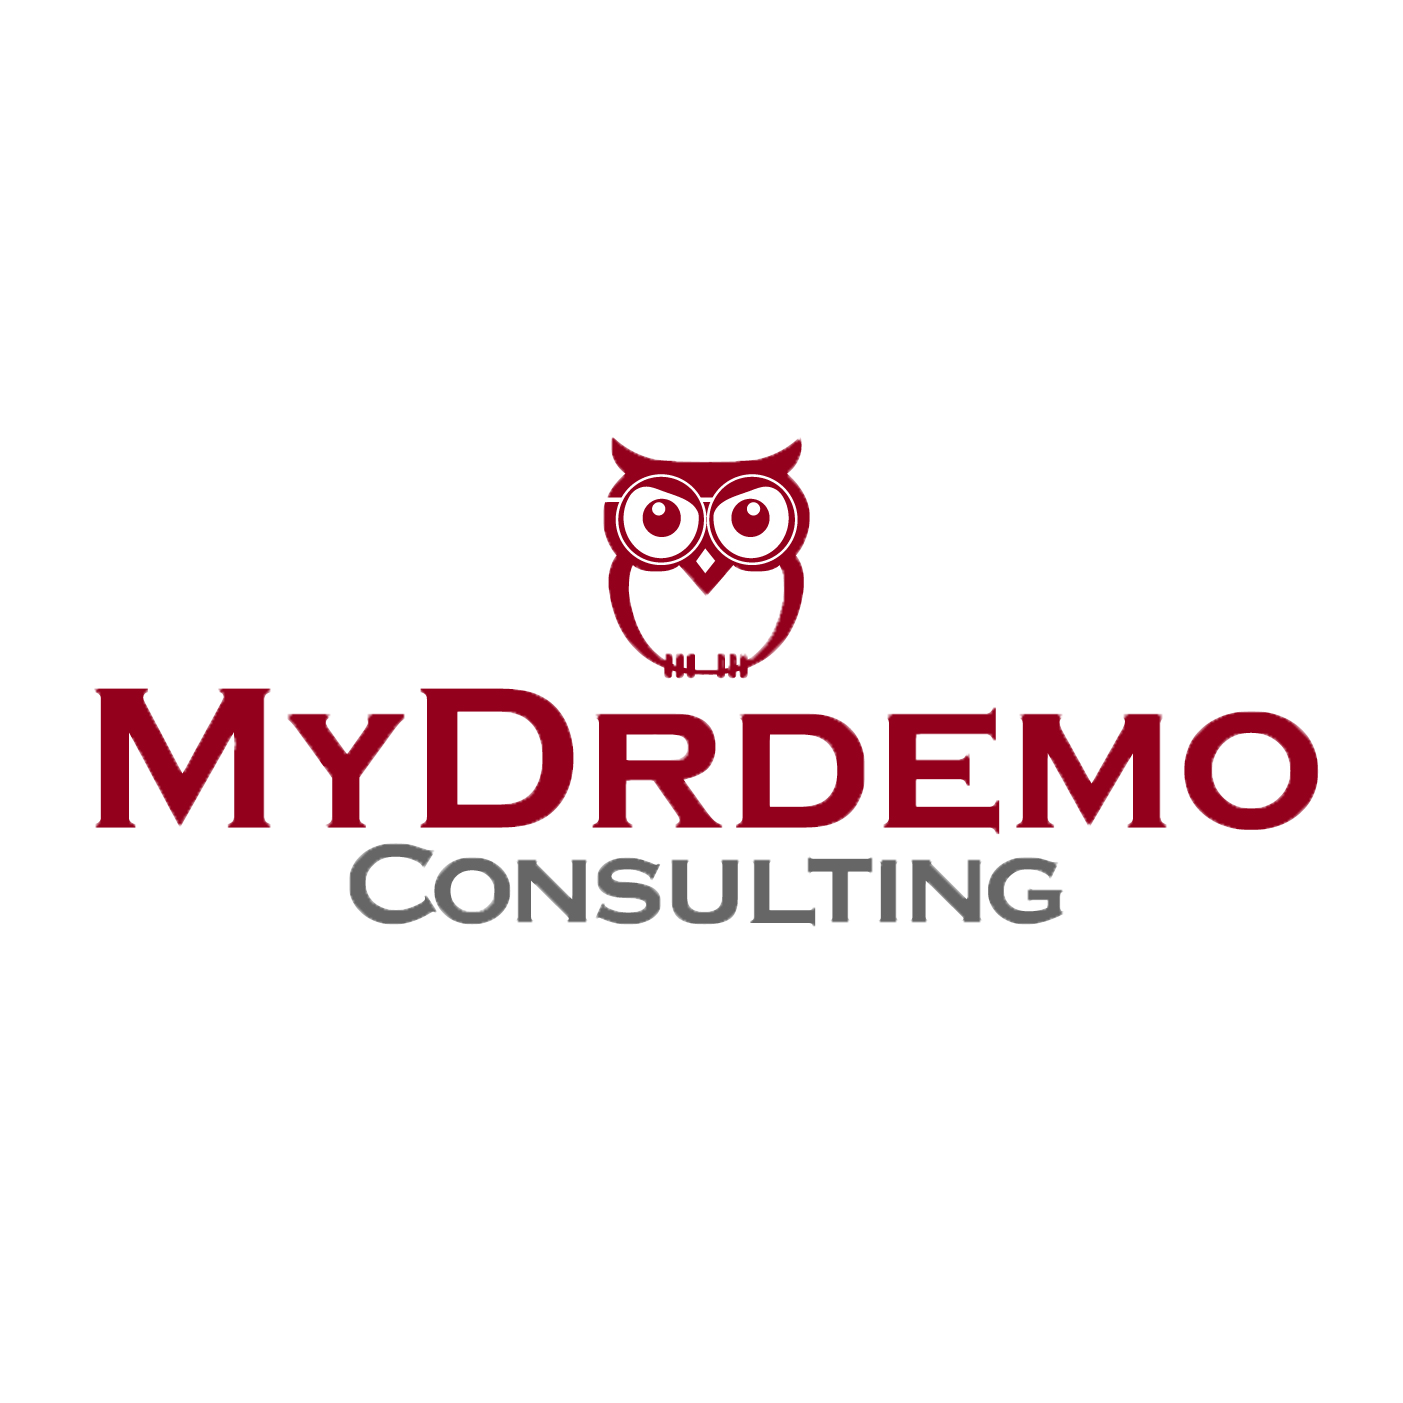 Daniel Residential Demo Consulting